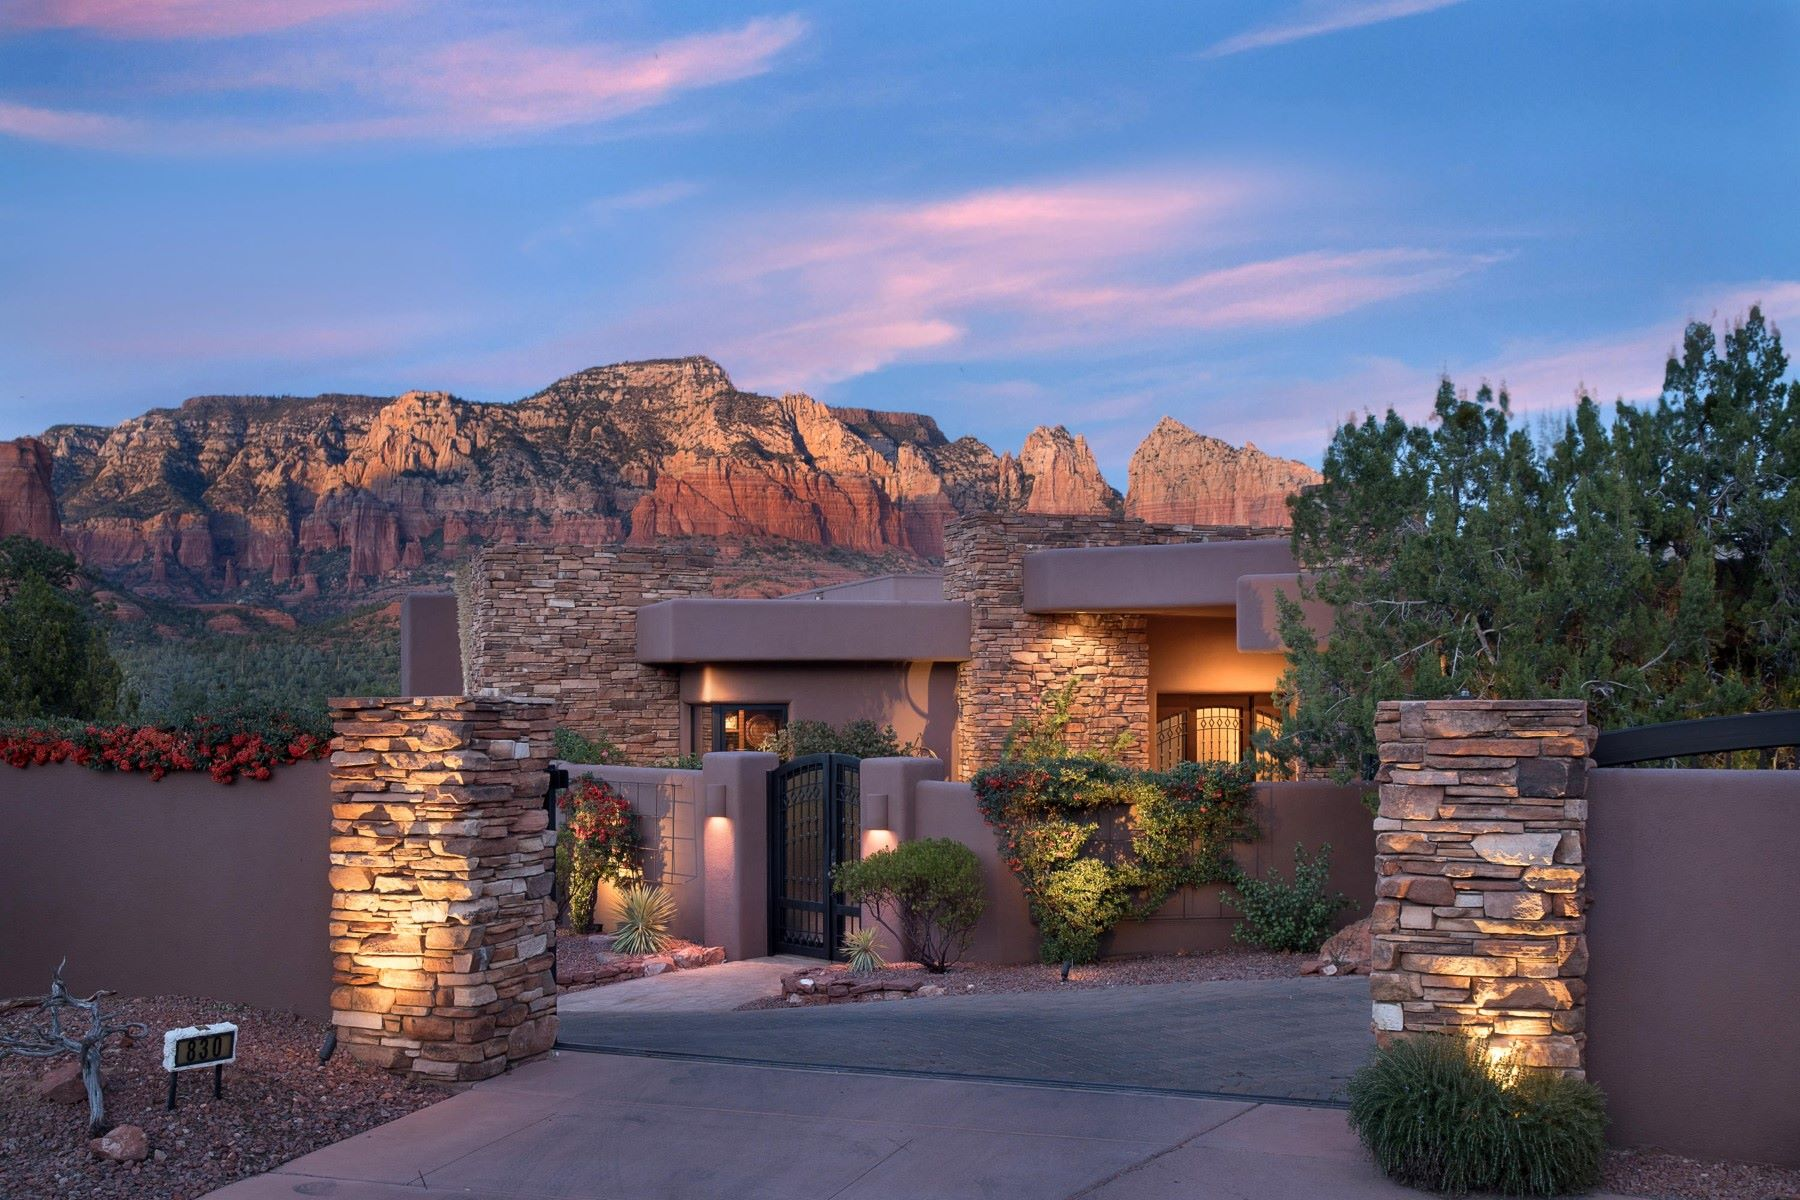 Single Family Home for Sale at Luxurious Custom Sedona home 830 Soldiers Pass Rd Sedona, Arizona 86336 United States